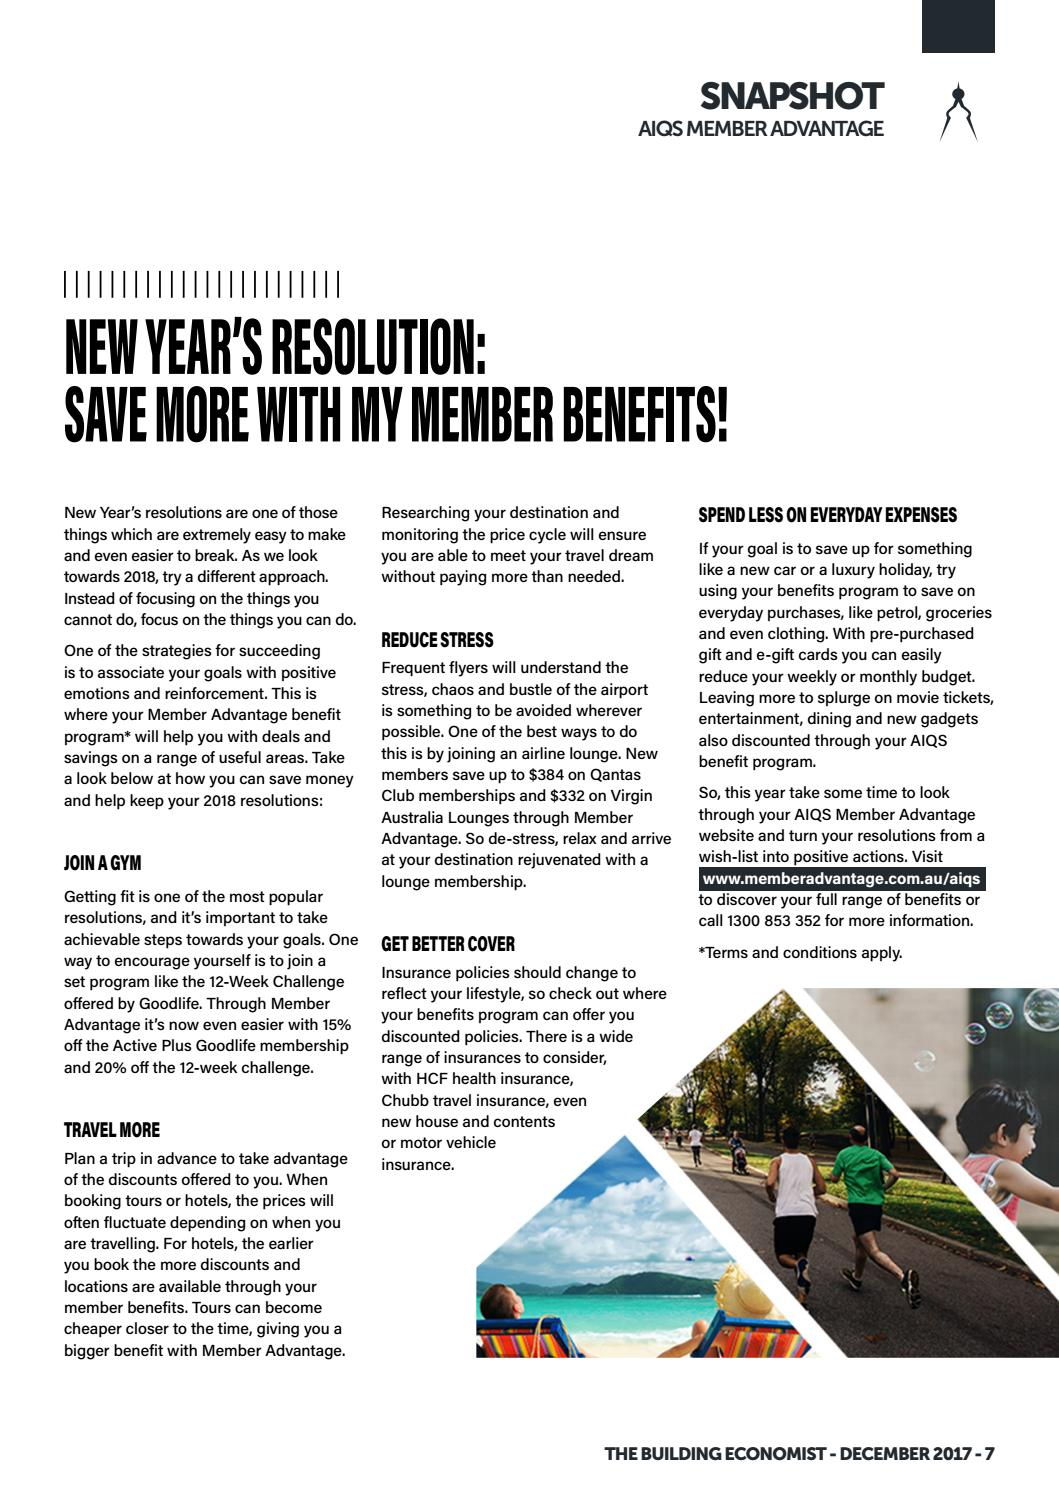 The Building Economist - December 2017 - The Yearly Wrap Up